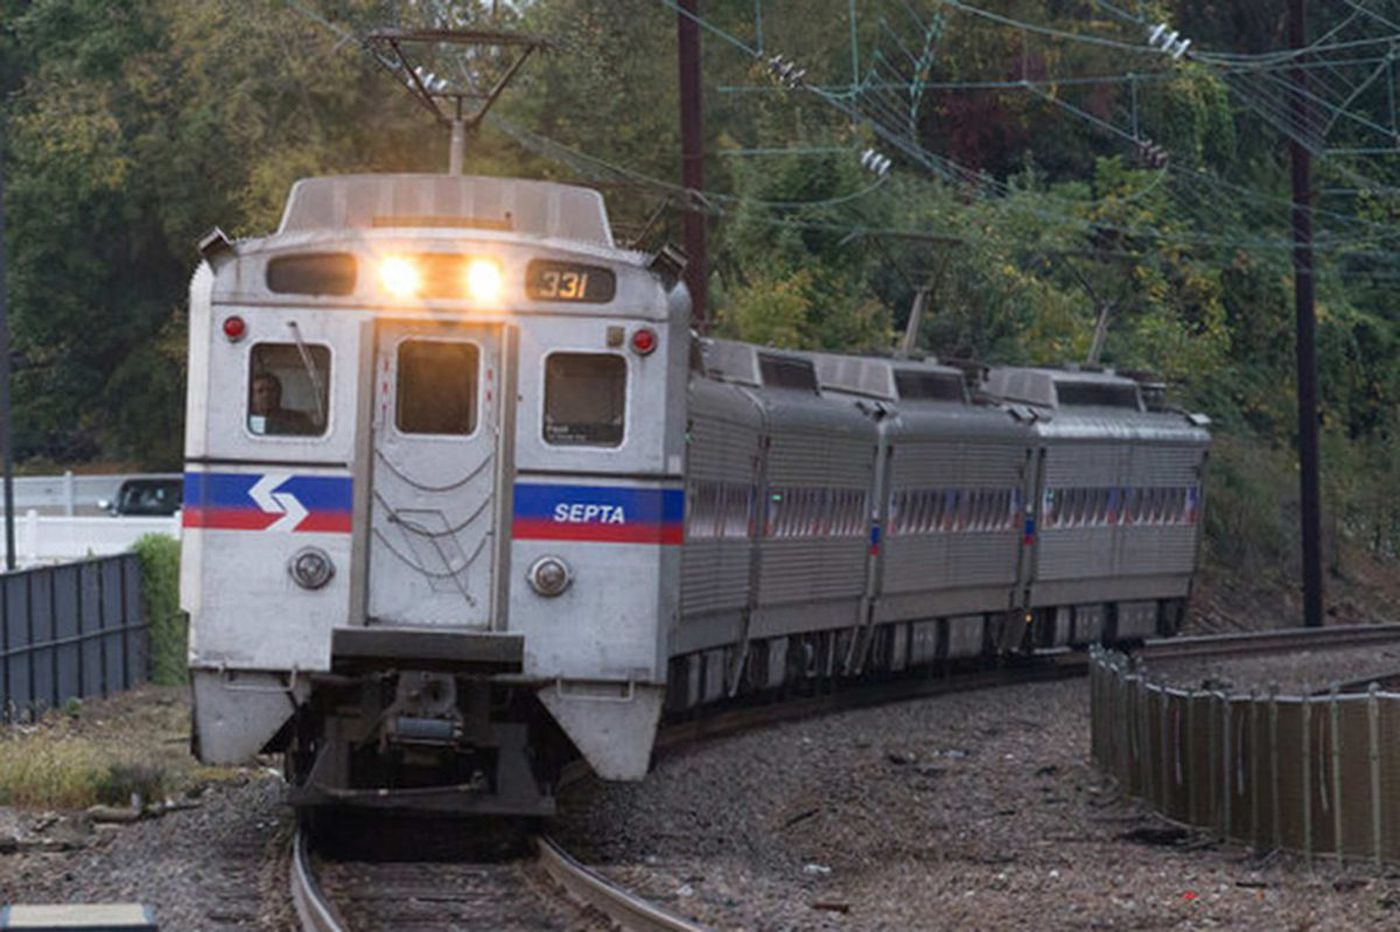 Service resumes on SEPTA's Paoli/Thorndale Regional Rail line